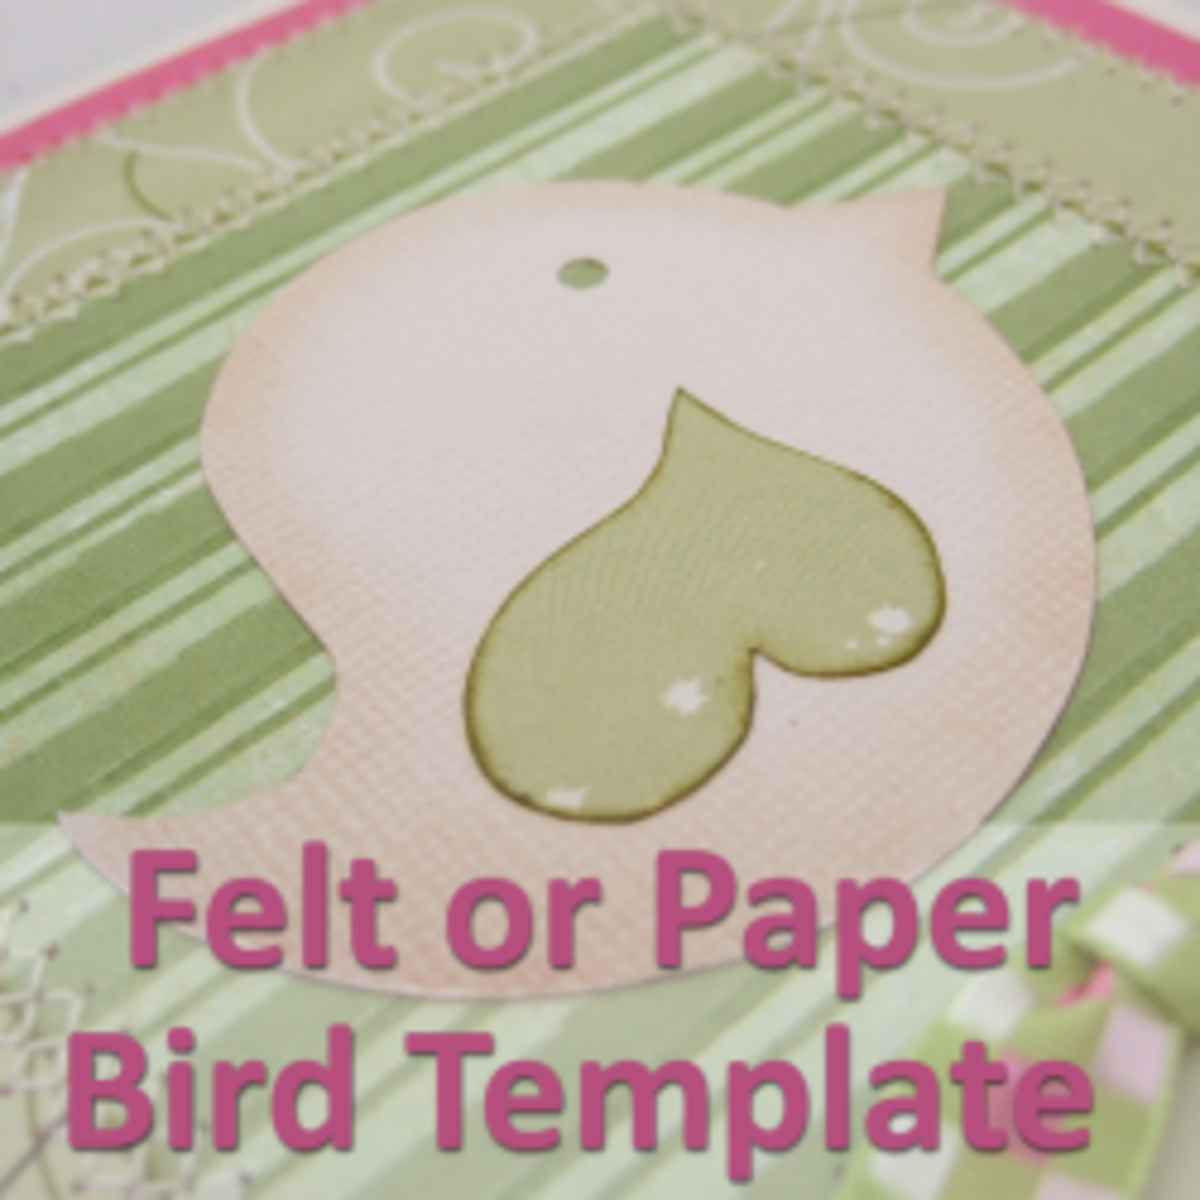 felt-or-paper-bird-template